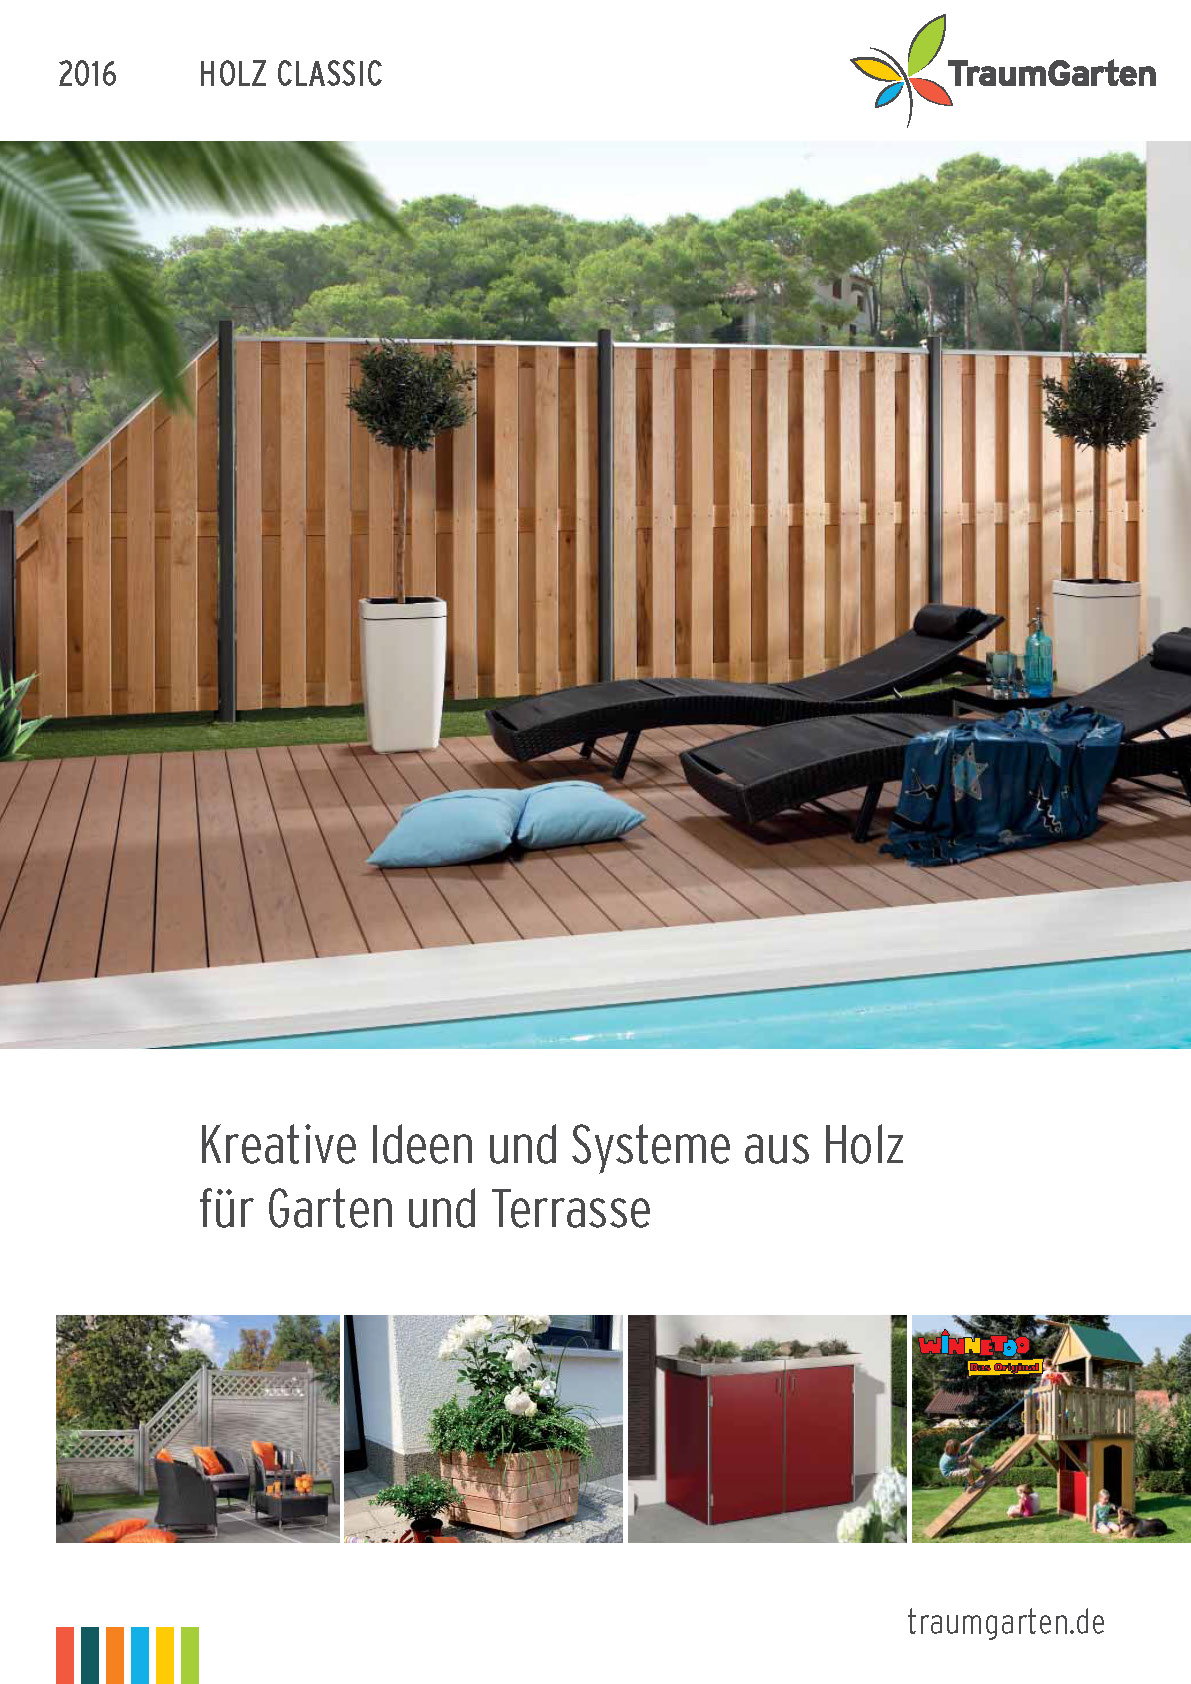 bauholz kvh terrasse zaun parkett paneel augsburg m nchen landsberg terrassendielen holz. Black Bedroom Furniture Sets. Home Design Ideas